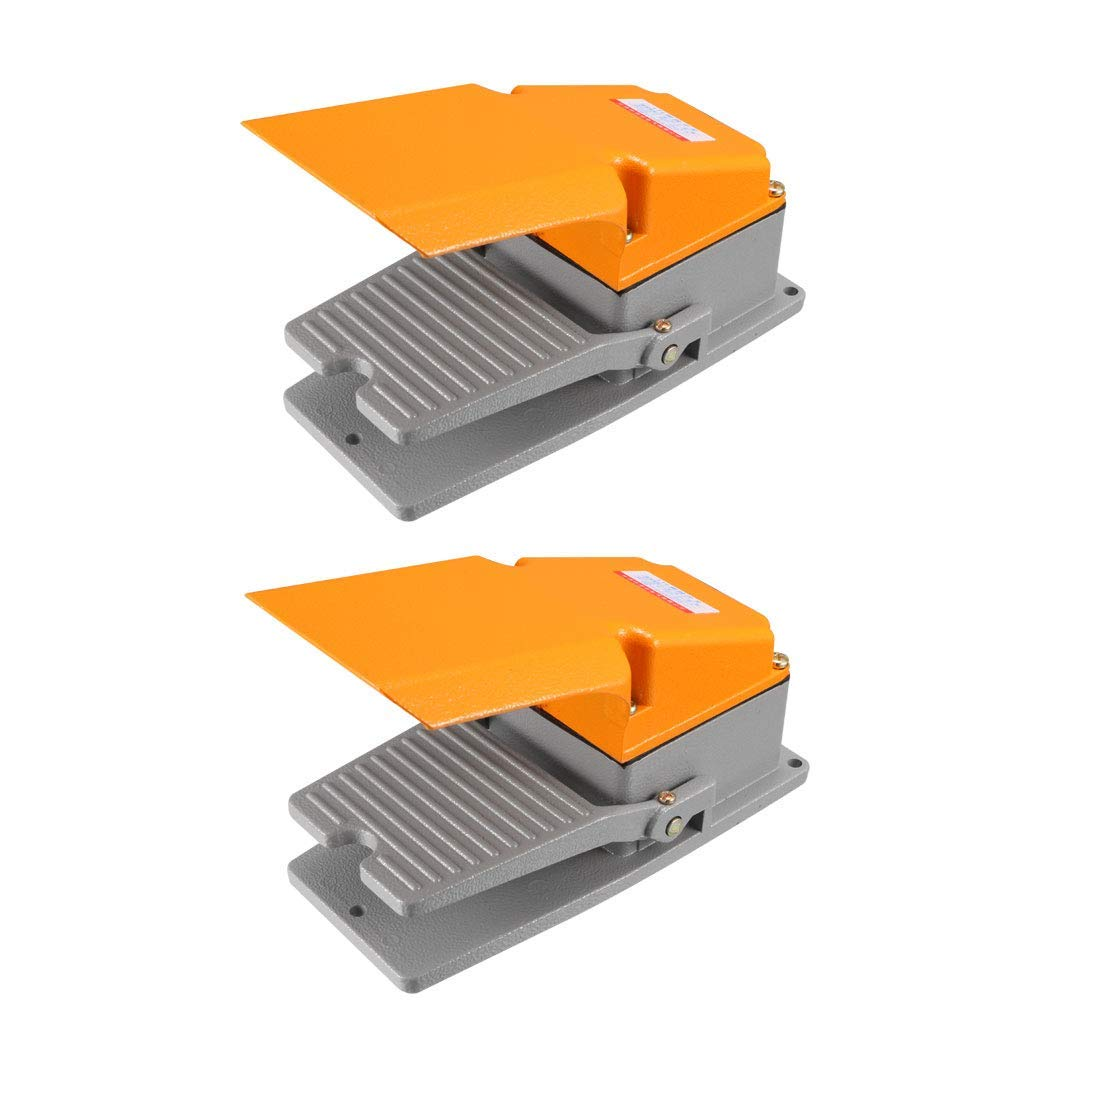 Industrial Non-Slip SPDT momentary Industrial footswitch NO NC 380V 15A with Protector 2PCS Aluminum case